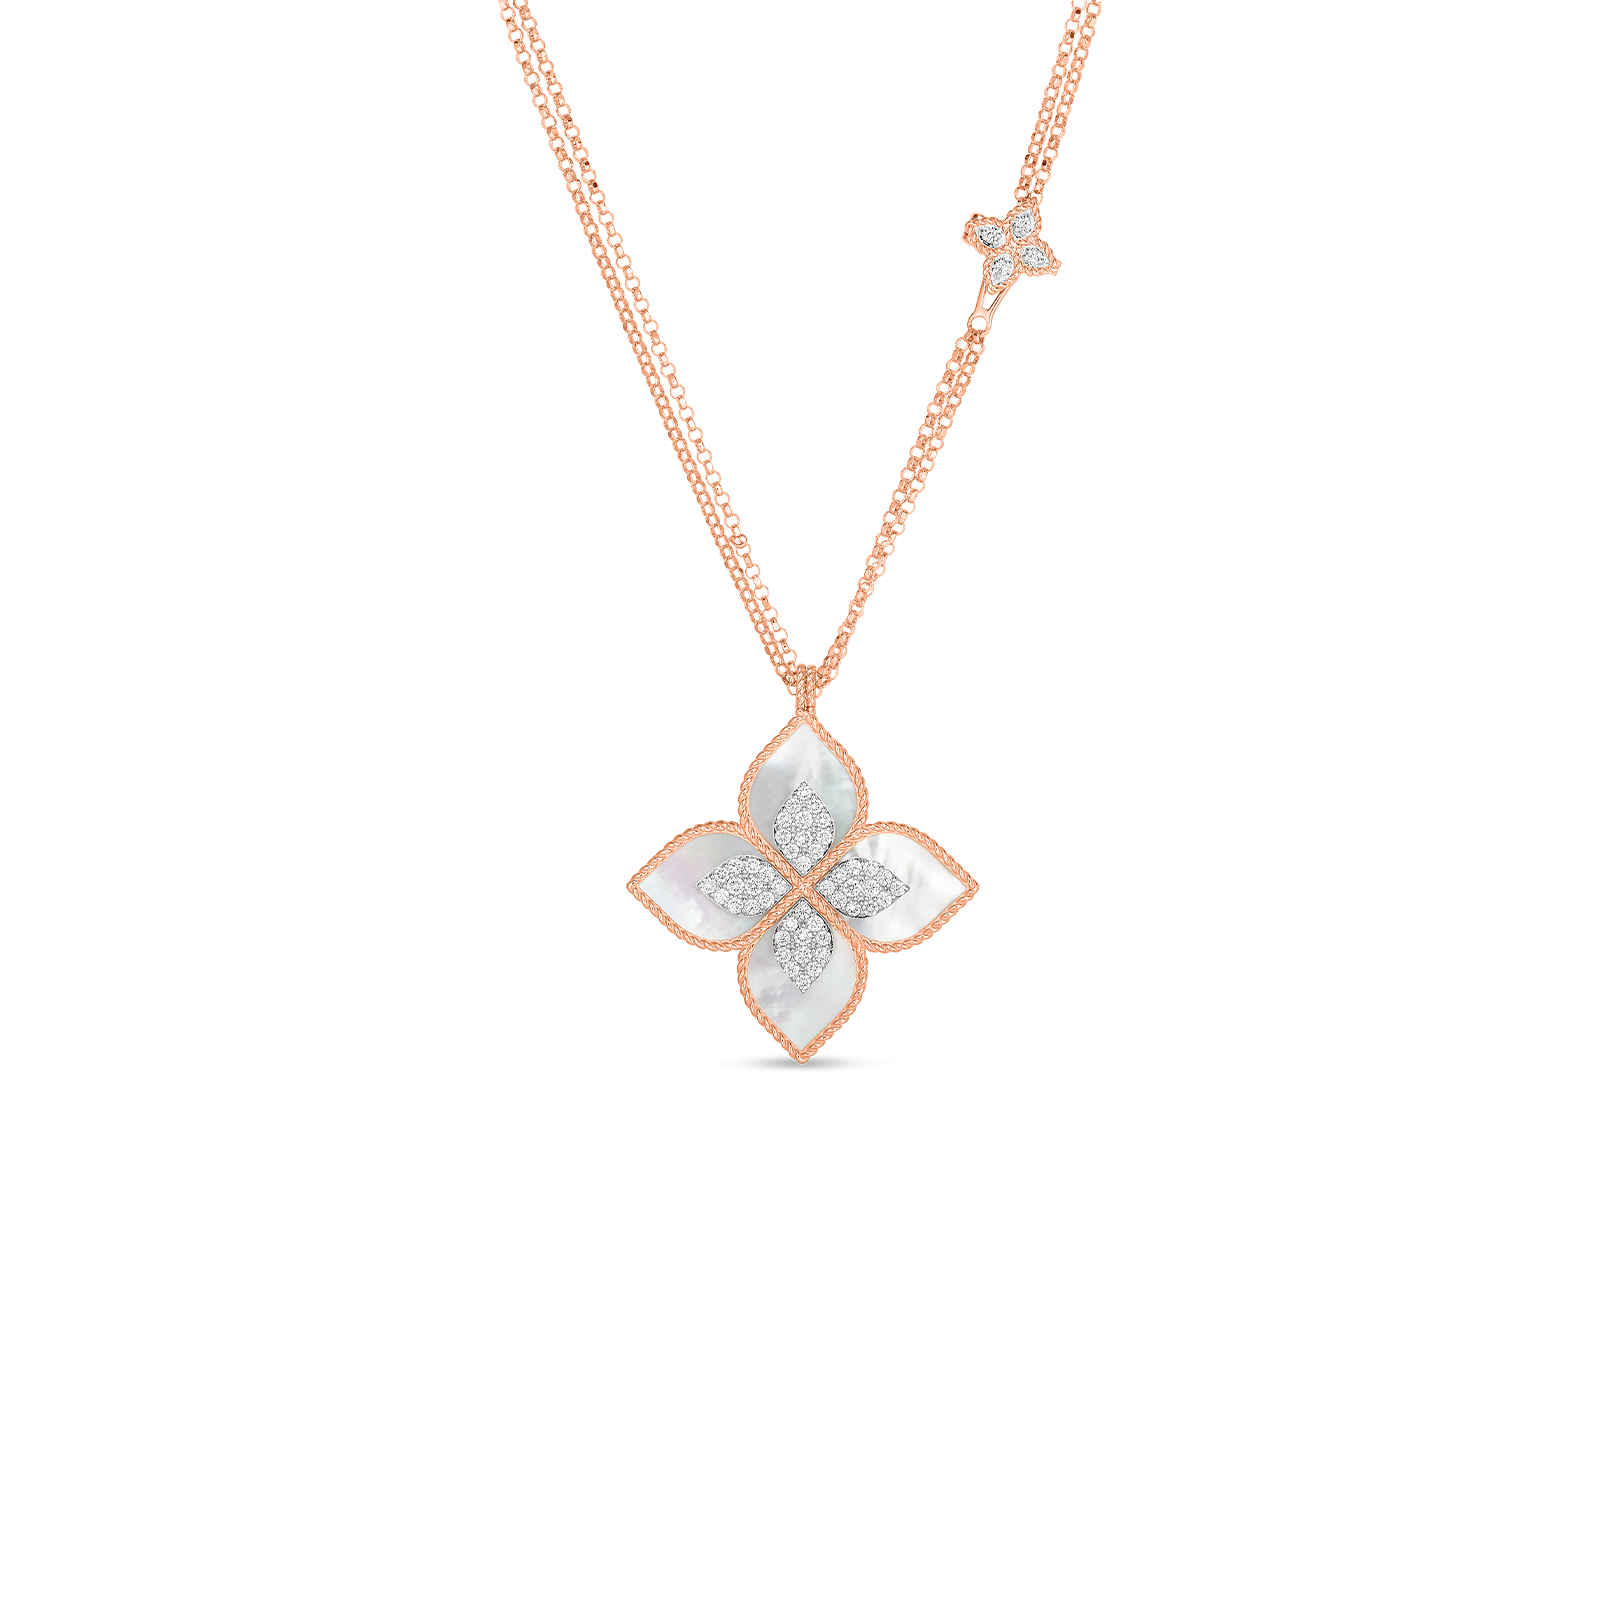 Roberto Coin Venetian Princess Mother of Pearl Double Chain Necklace in 18K Gold